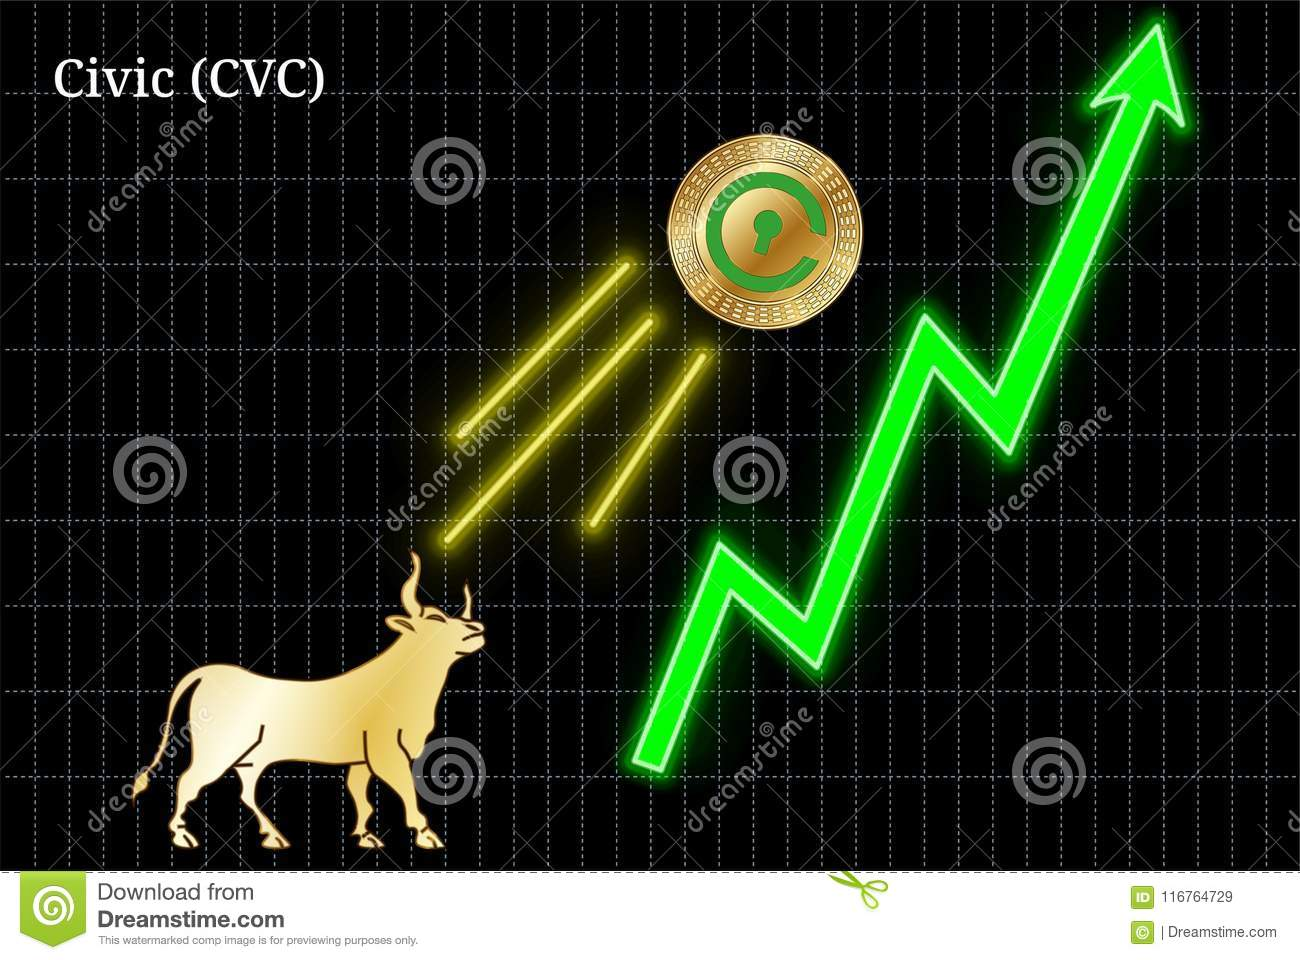 how to buy cvc cryptocurrency